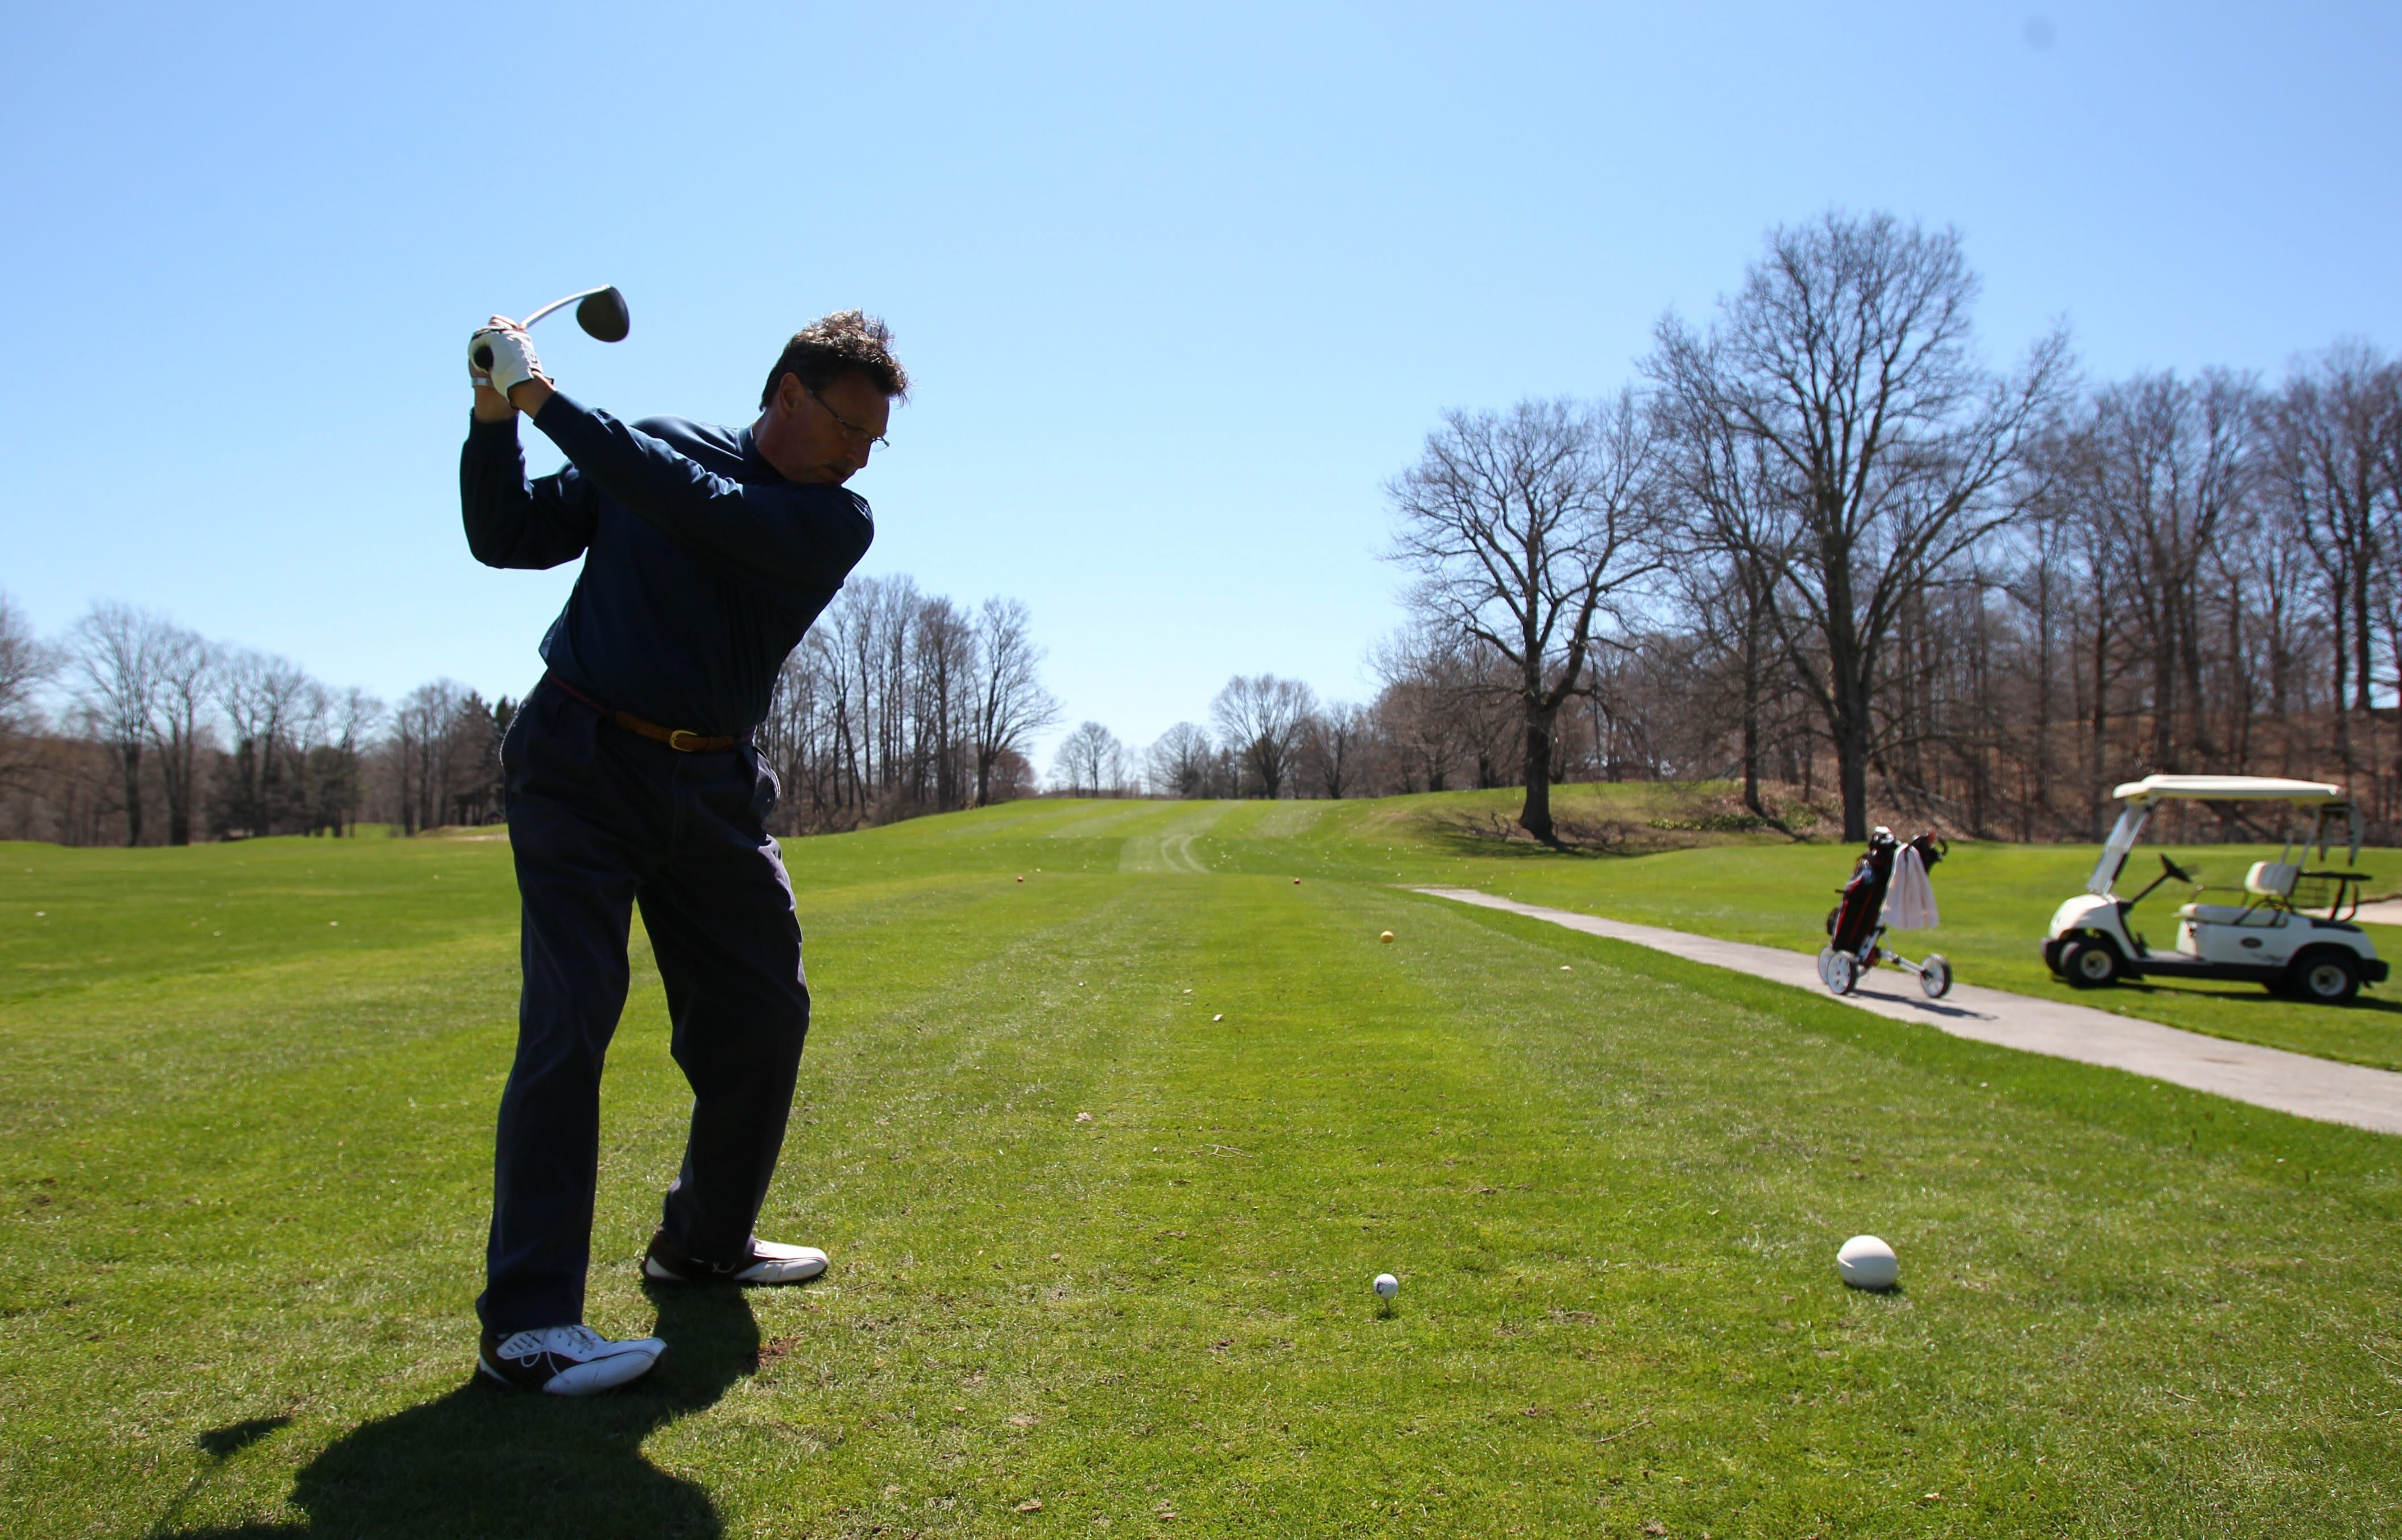 Ron Croce, of Depew, gets ready to hit his tee shot on the 11th hole at Elma Meadows Golf Course on Thursday.